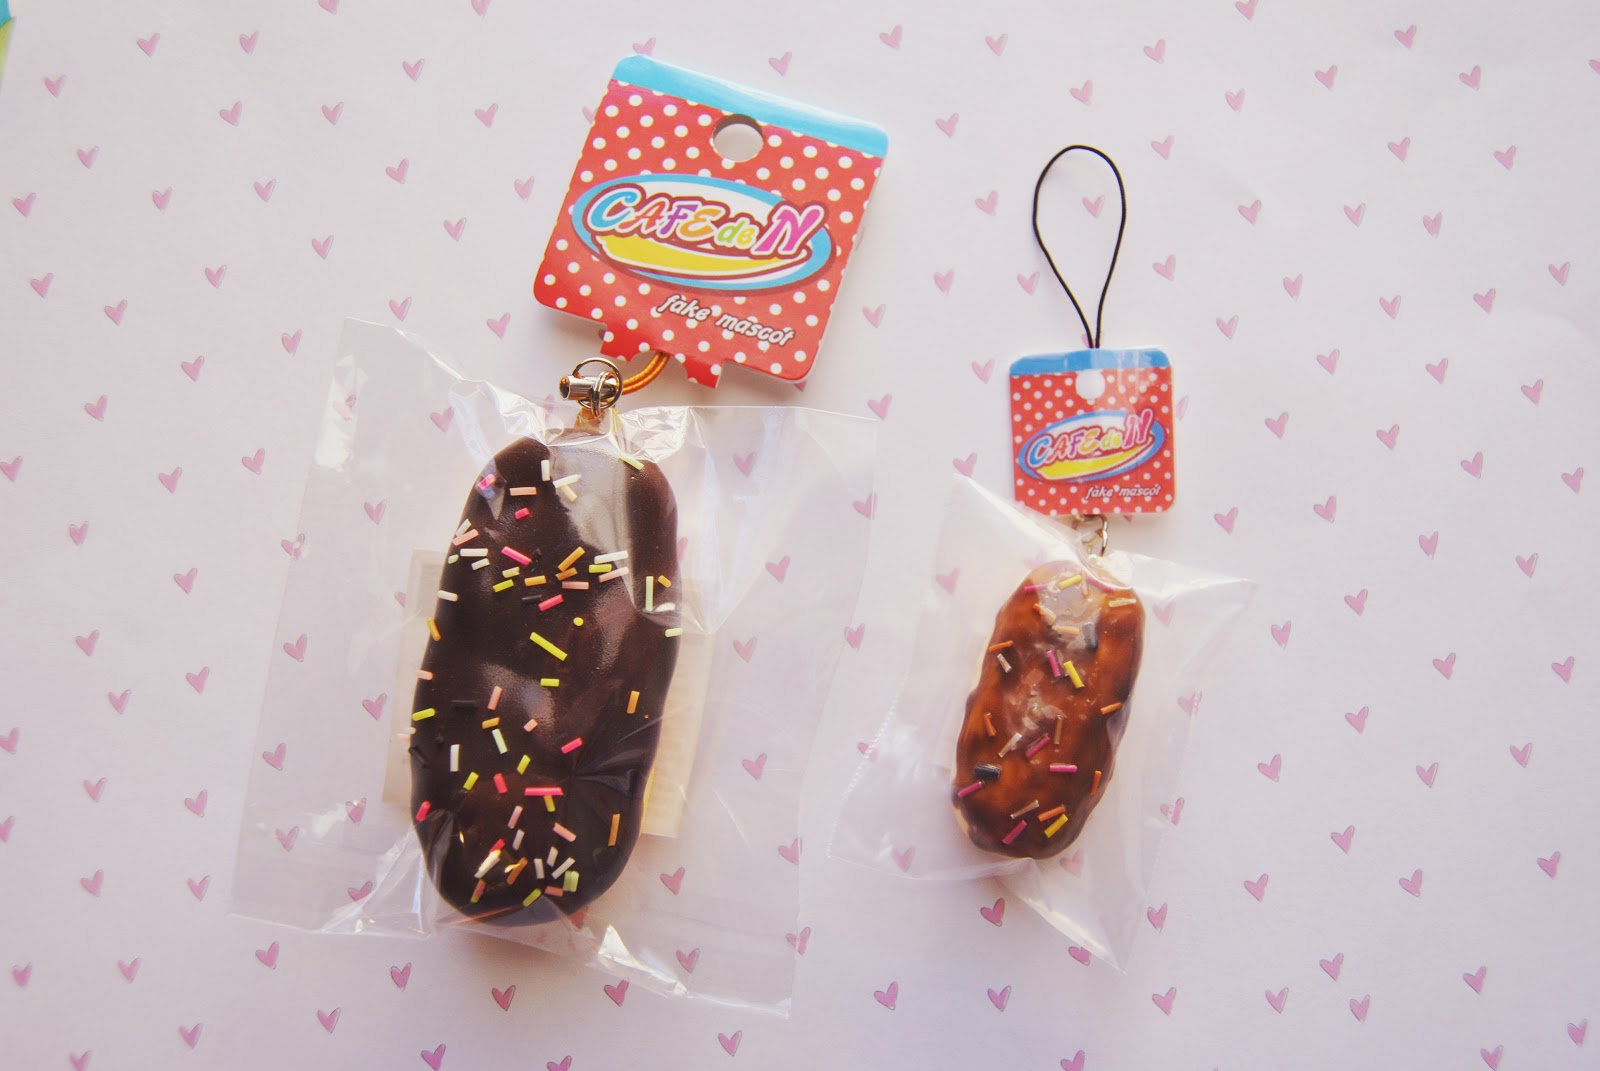 Cafe De N Eclair Squishy : pasteltinted: Cafe De N Eclair Squishy-Inspired Charms